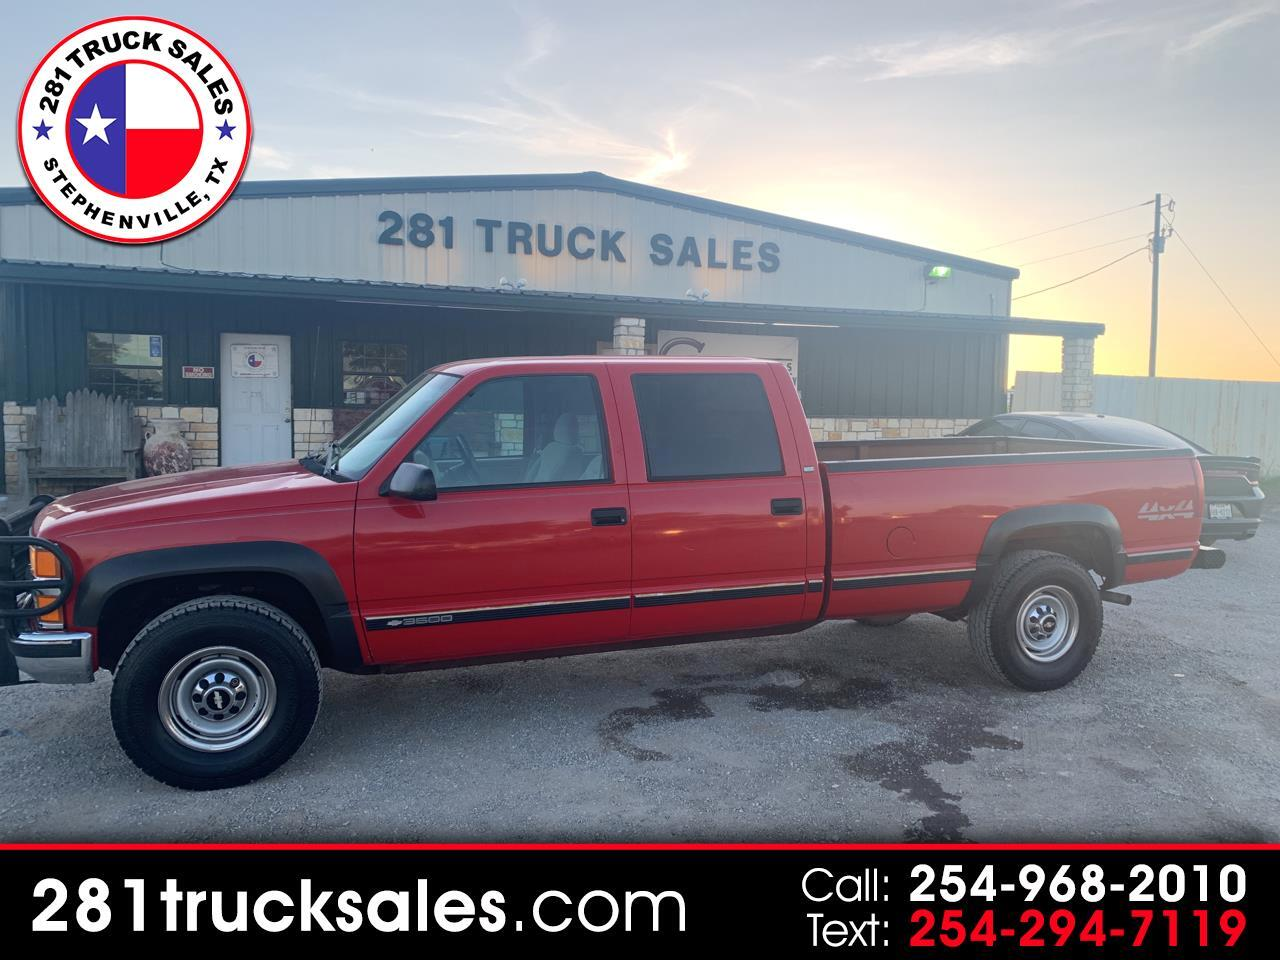 1998 Chevrolet C/K 3500 Crew Cab Long Bed 4WD